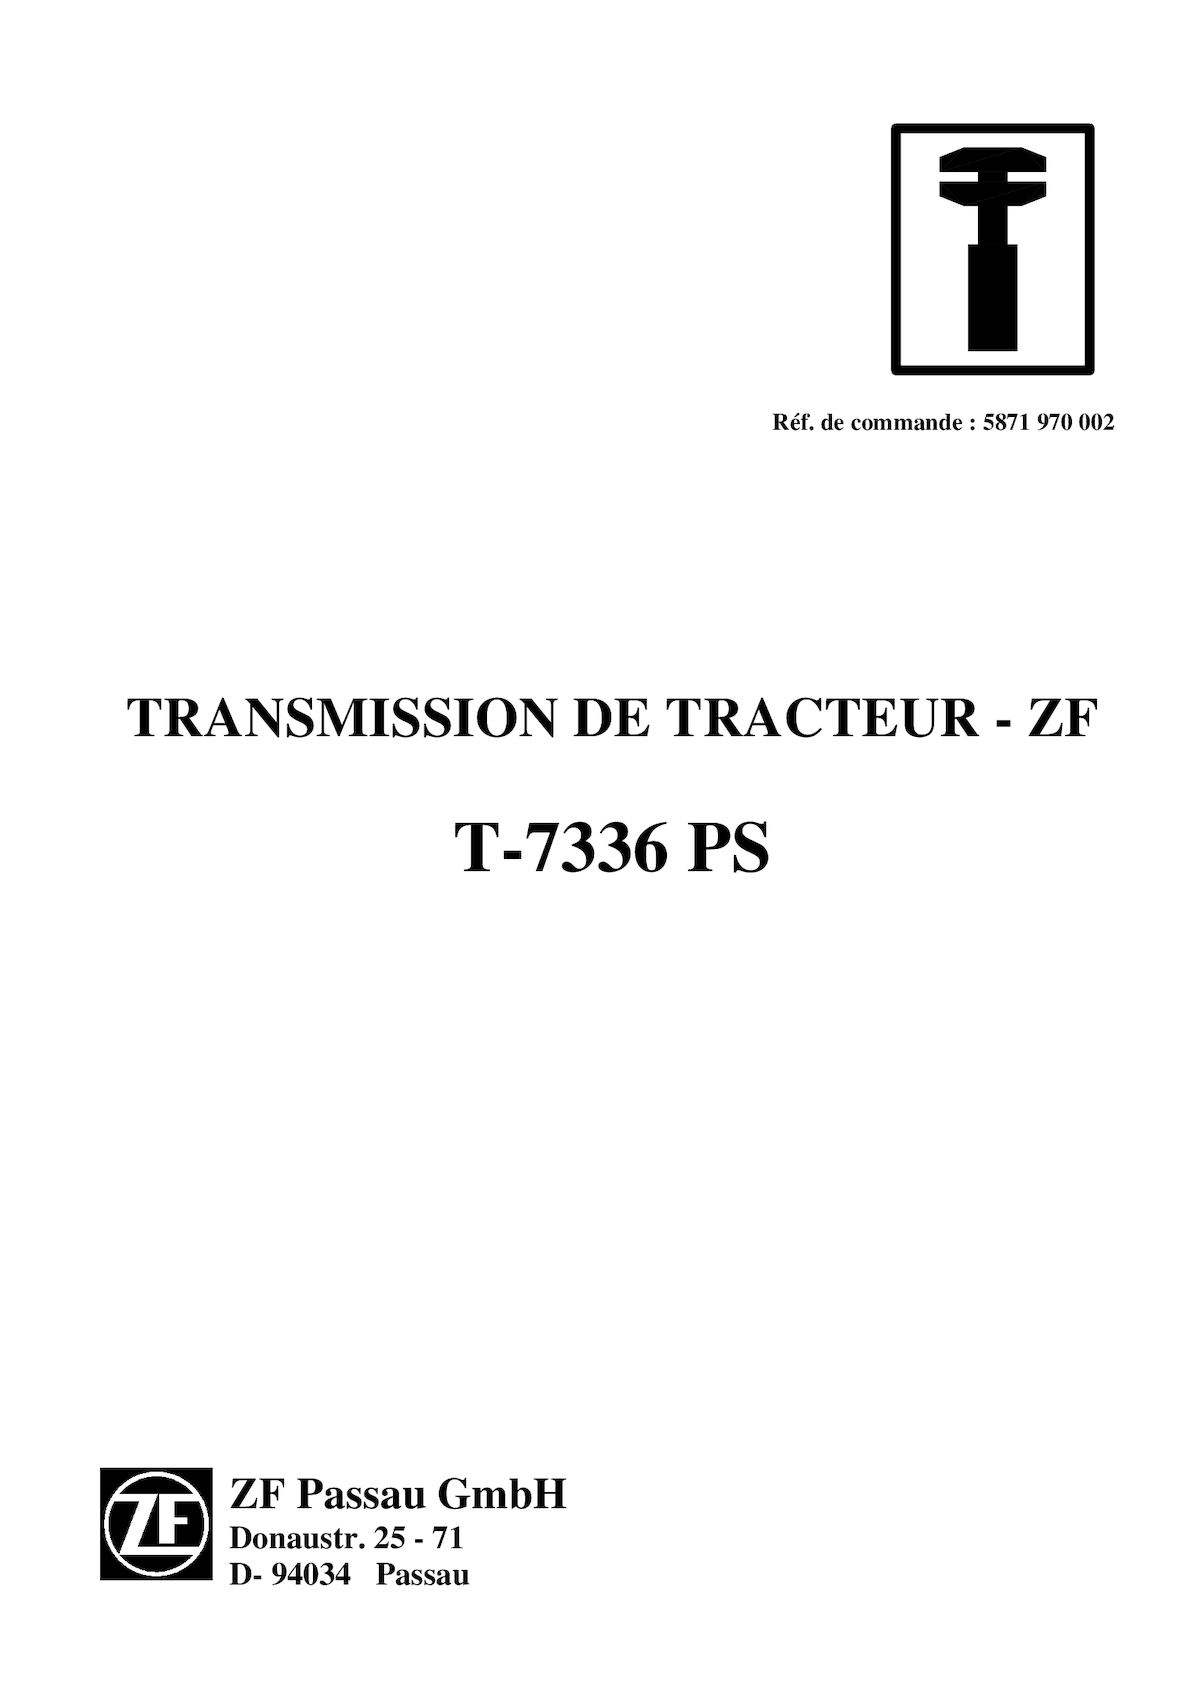 TRANSMISSION T-7336 PS